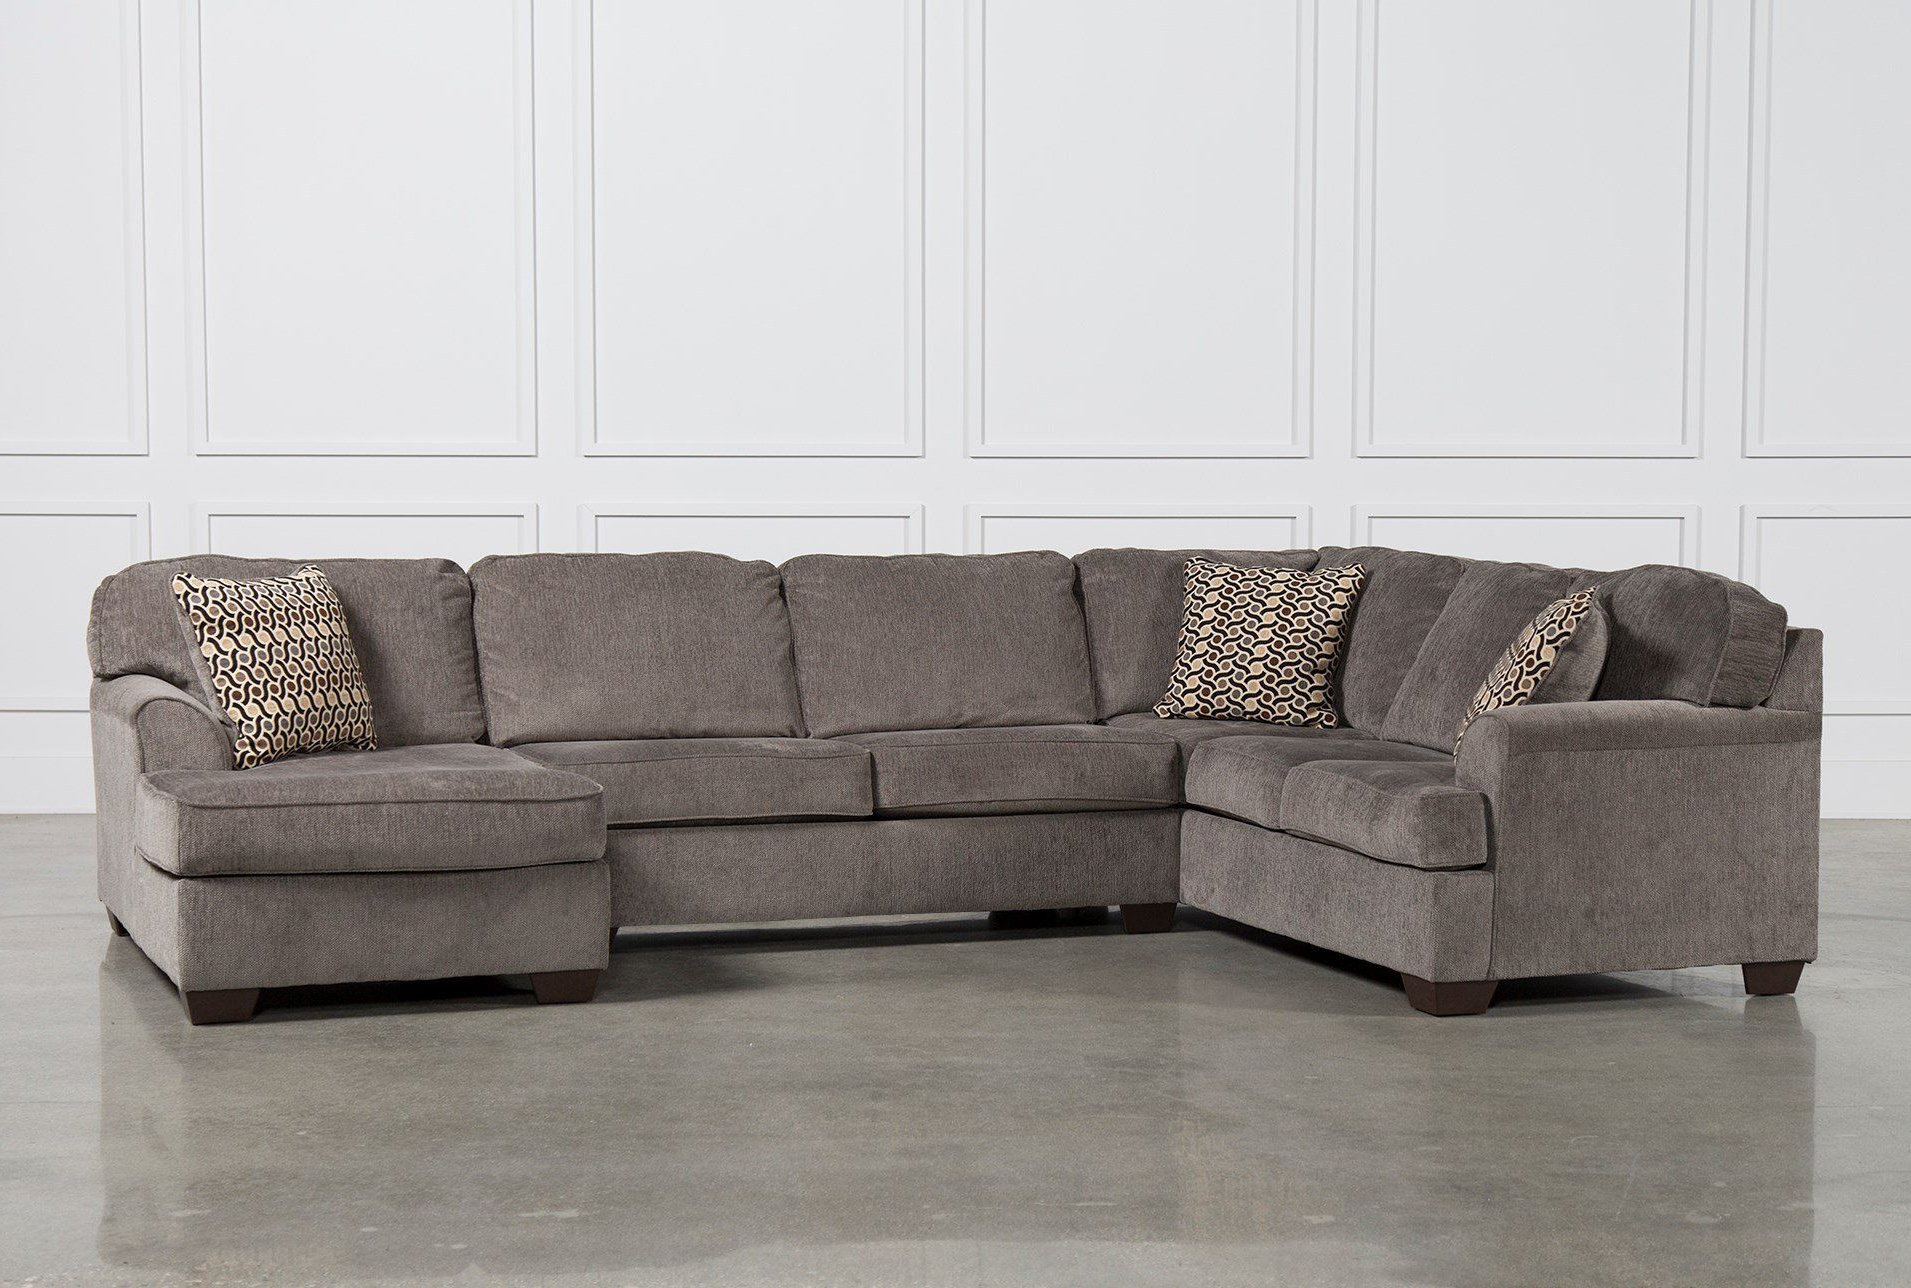 2018 Norfolk Grey 3 Piece Sectionals With Laf Chaise With Regard To Shop For Loric Smoke 3 Piece Sectional W/raf Chaise At Livingspaces (View 1 of 20)